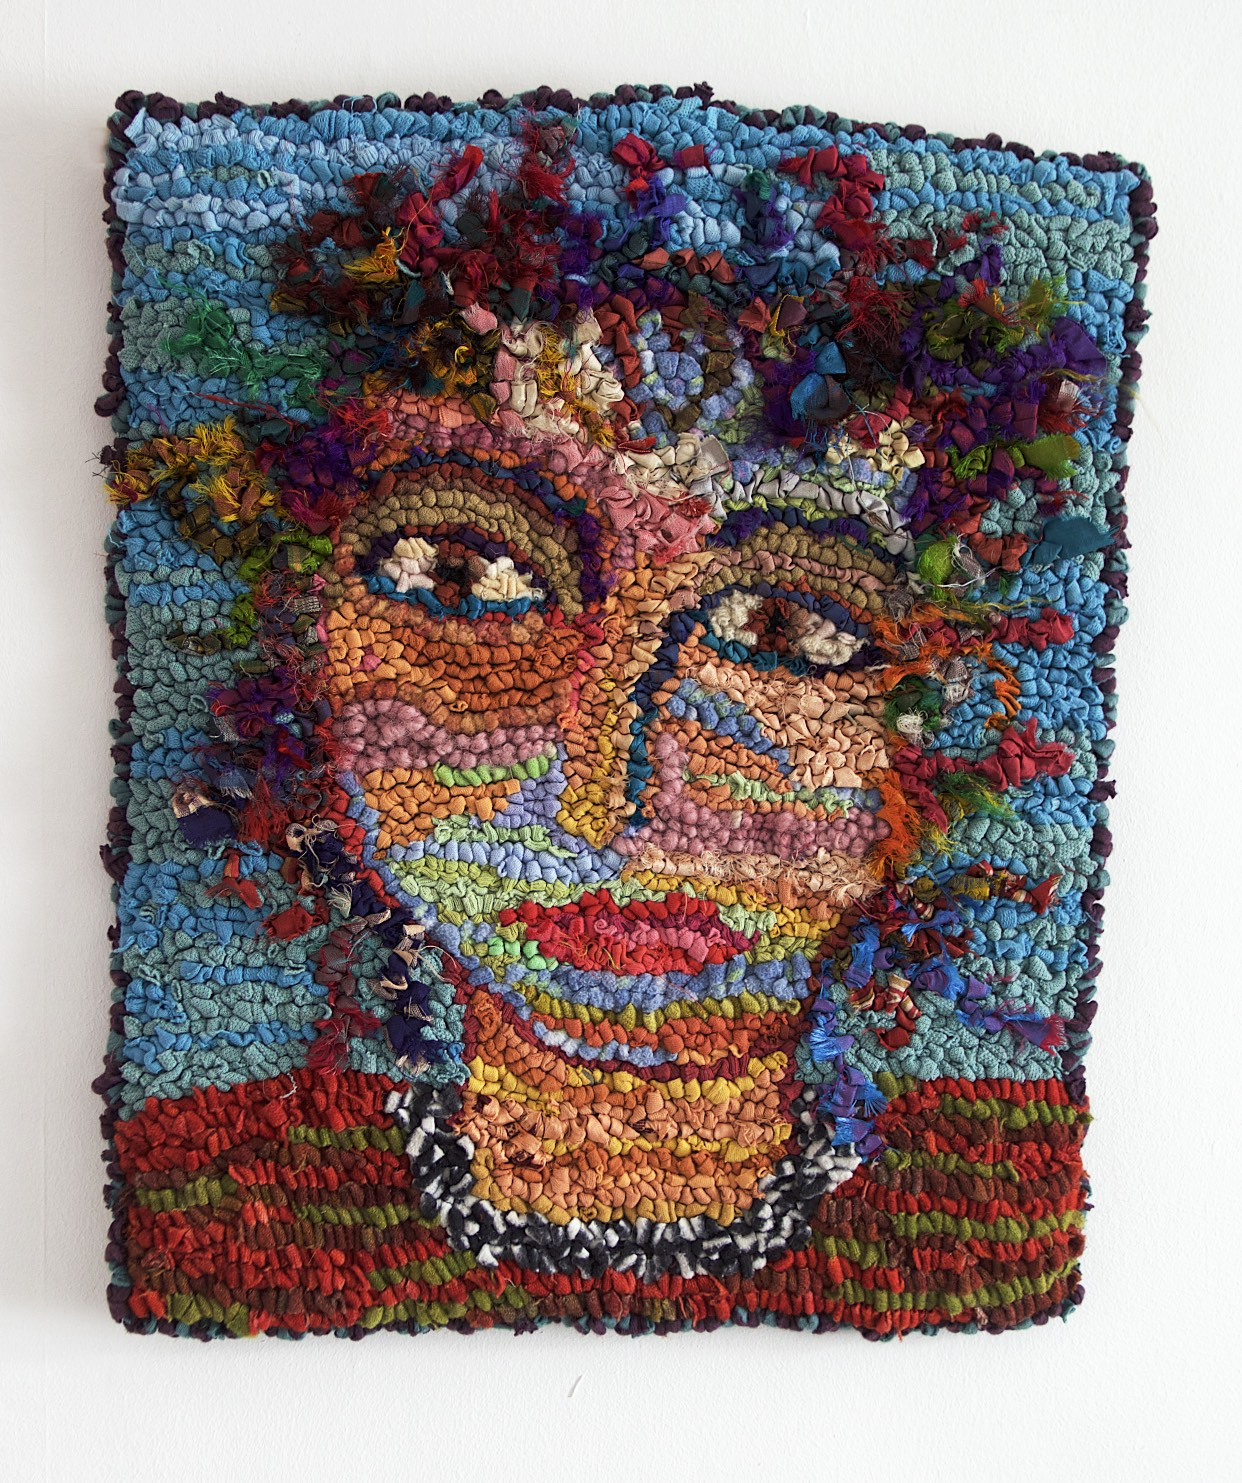 Sue Dove - Self portrait rag rug